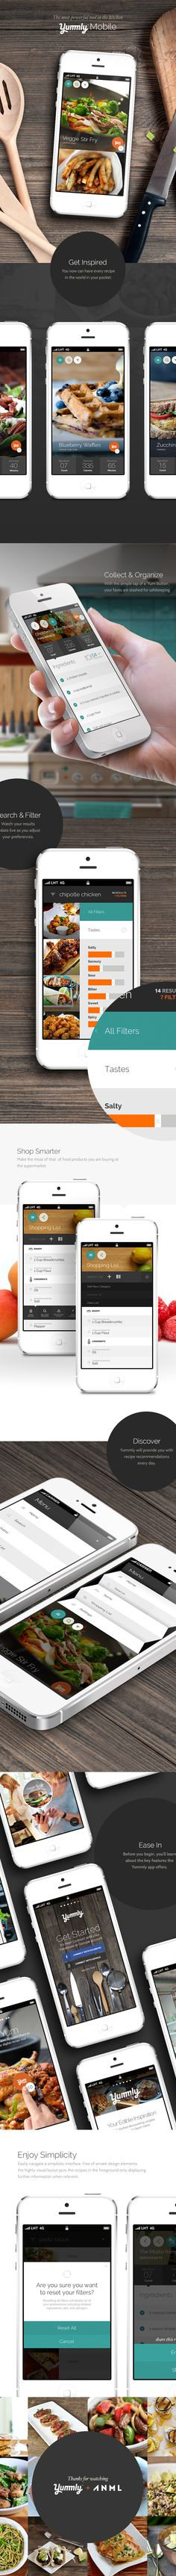 1 Mobile App Design Inspiration – Yummly (FREE – available on app store) – Bence Bohati Mobile App Design Inspiration – Yummly (FREE – available on app store) Yummly Mobile – this recipe app is AWESOME. I use it all the time. Mobile Ui Design, App Ui Design, User Interface Design, Flat Design, Deco Design, Game Design, Design Sites, Web Mobile, Mobile App Ui